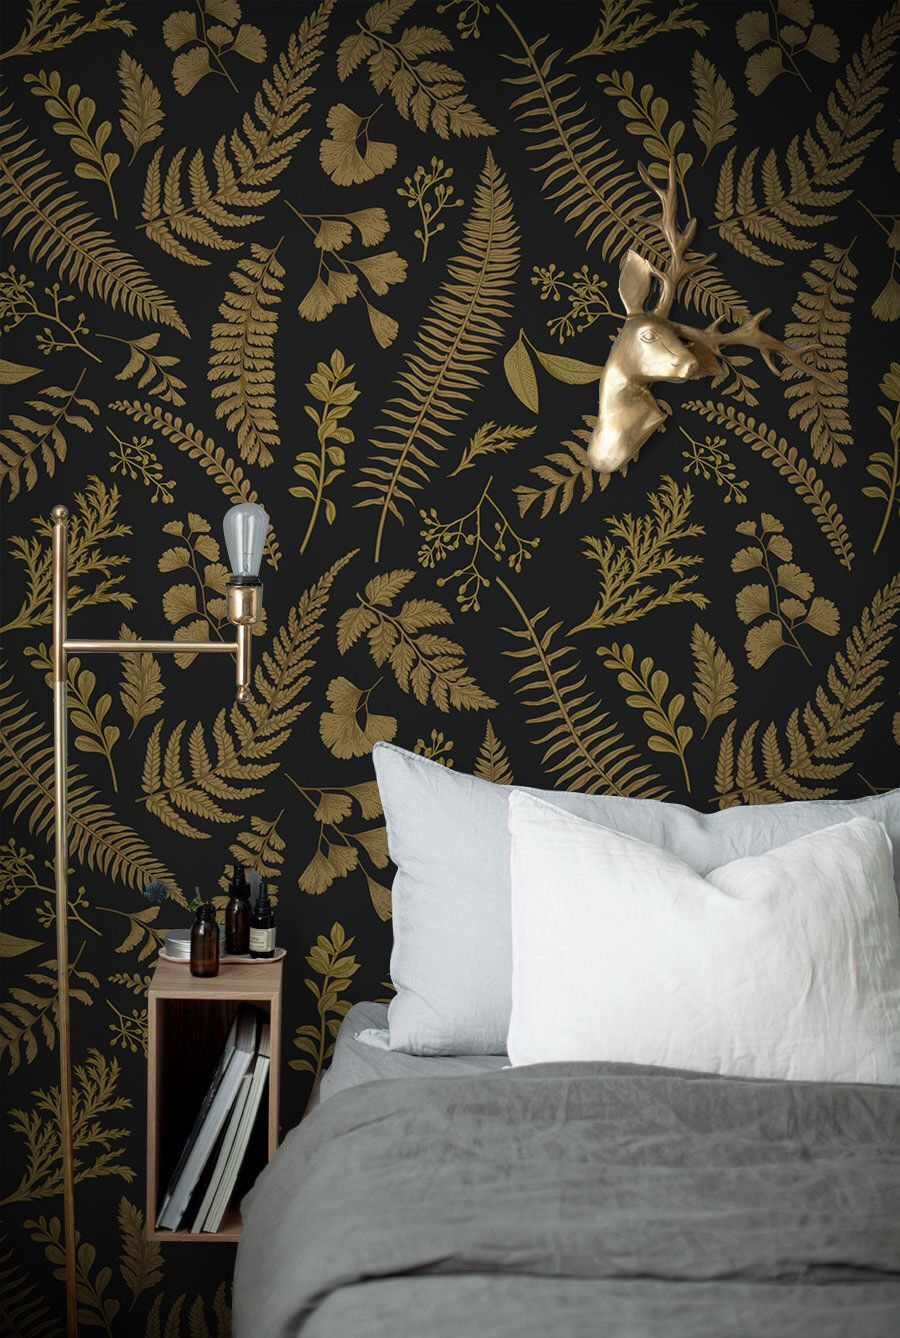 How To Install A Removable Wallpaper Mural In 2020 Decor Home Home Decor